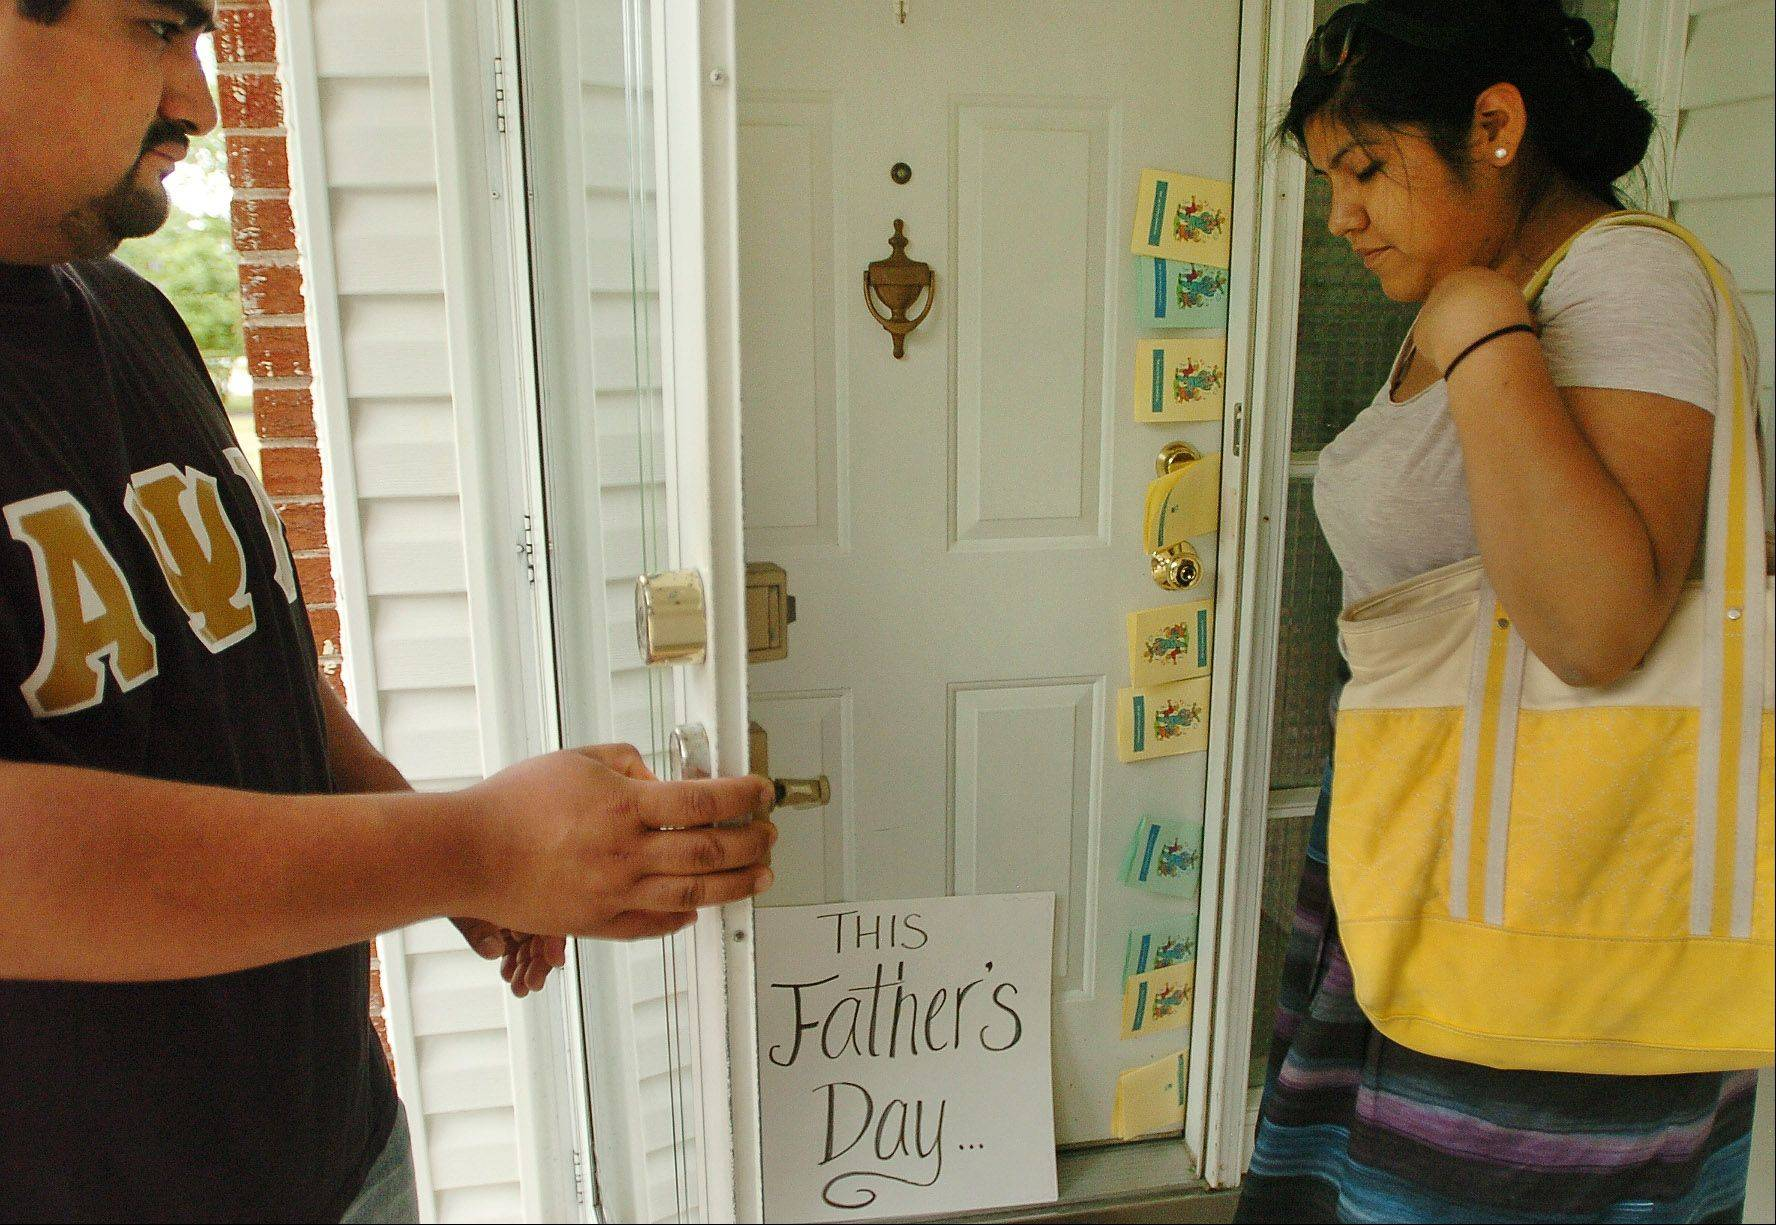 Bob Chwedyk/bchwedyk@dailyherald.comRicardo Serrano, left, and Maria Salazar along with members of the Illinois Coalition for Immigrant and Refugee Rights deliver Father's Day cards and letters to state Rep. Fred Crespo's home Saturday in protest of his policies on immigration.